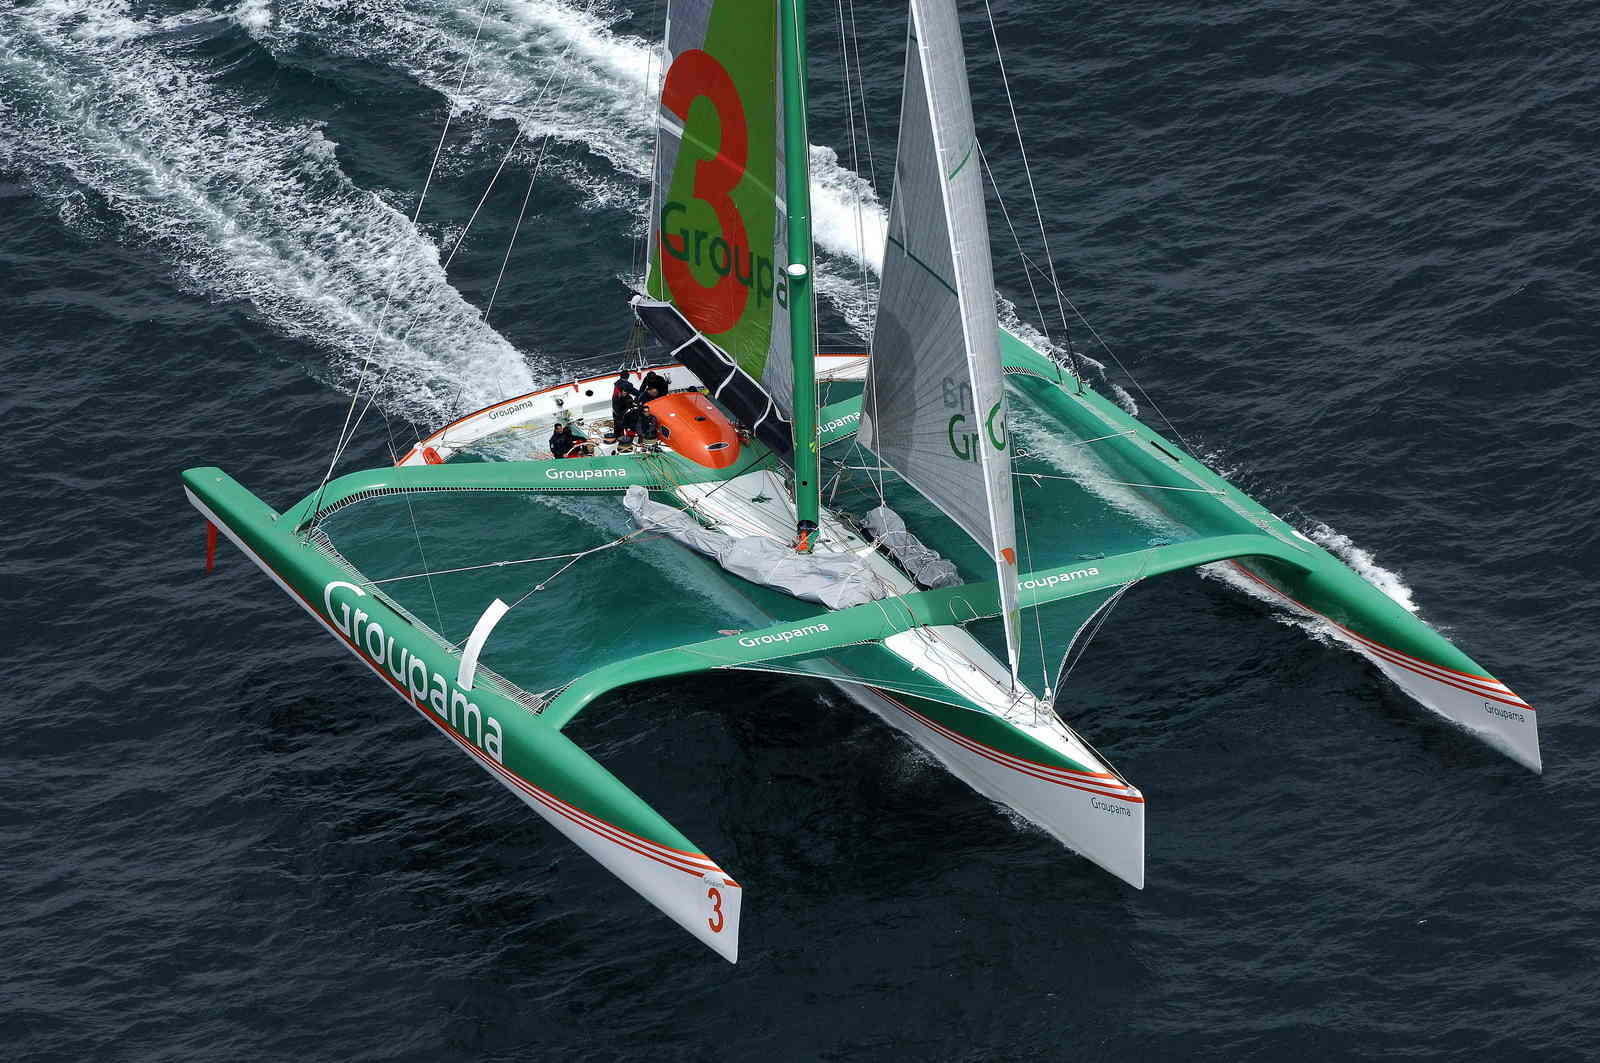 Groupama 3 Establishes Three New Records Gallery 188109 | Top Speed